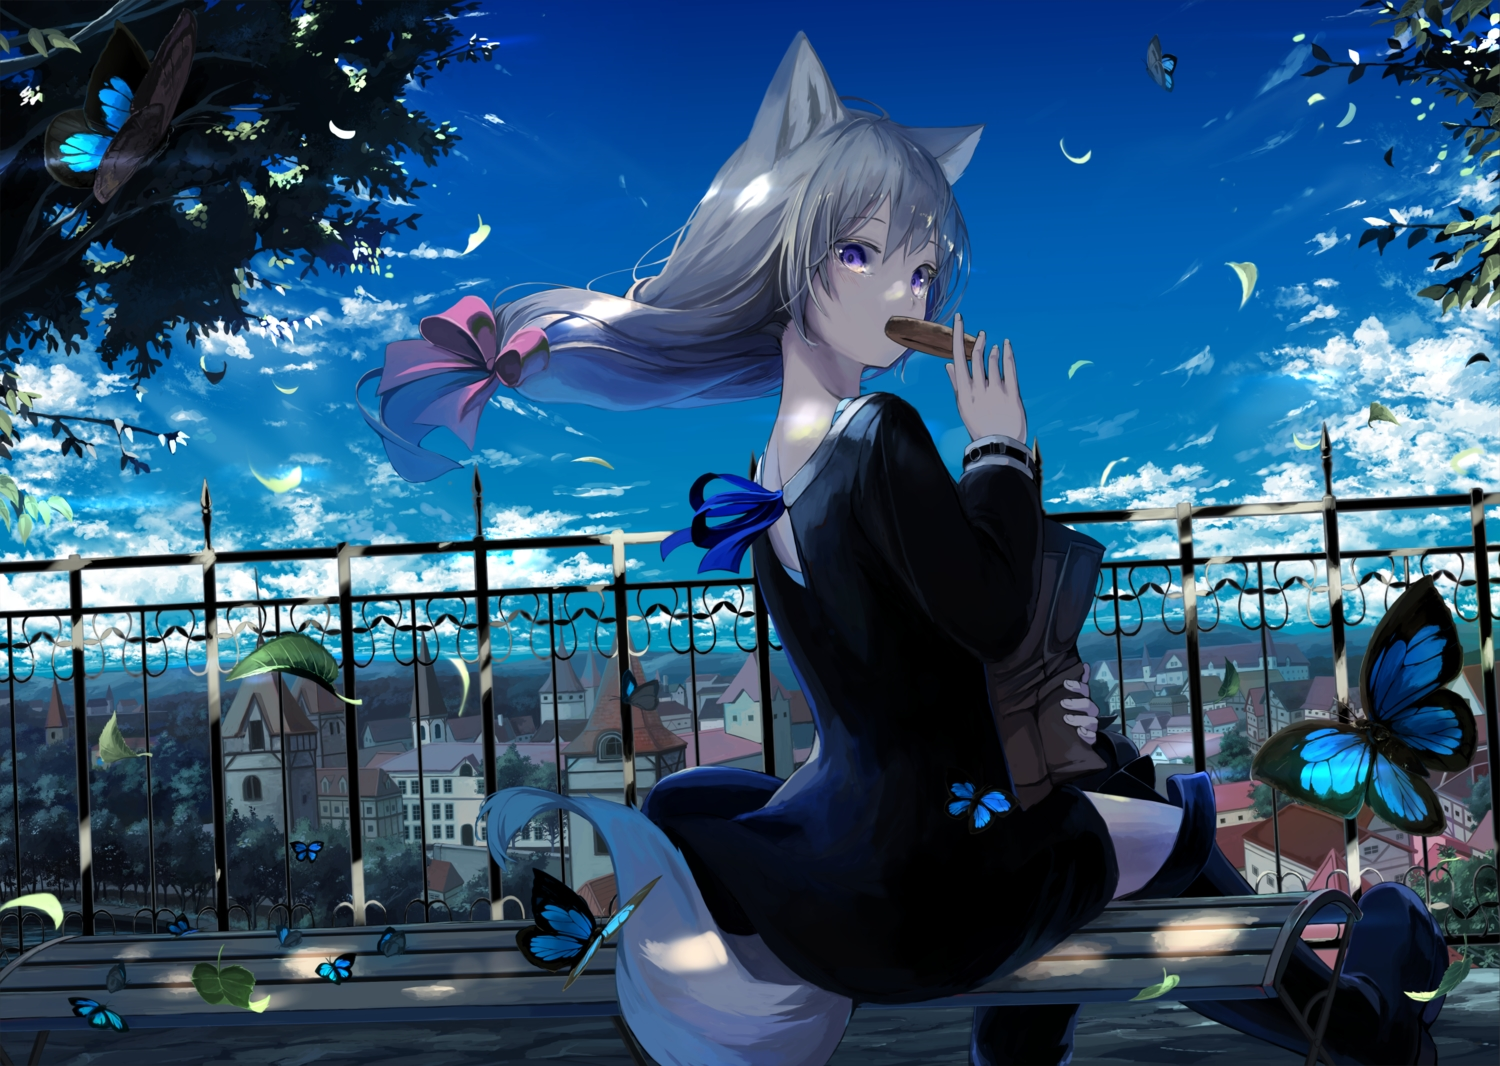 animal_ears boots building butterfly city clouds dress food gray_hair long_hair mikisai original ponytail purple_eyes shade sky tail tree